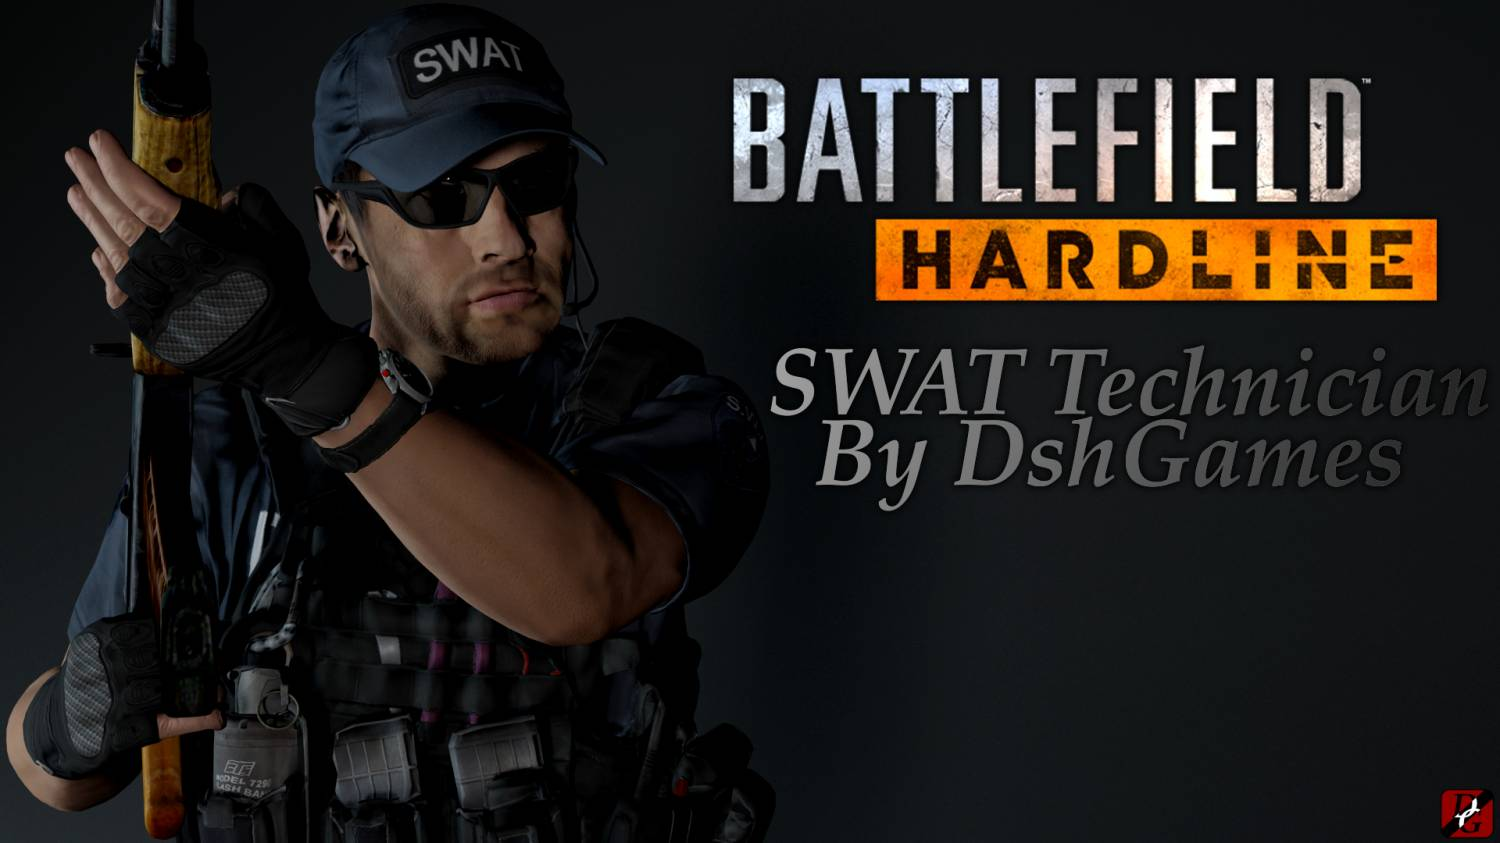 SWAT Technician GTA SA